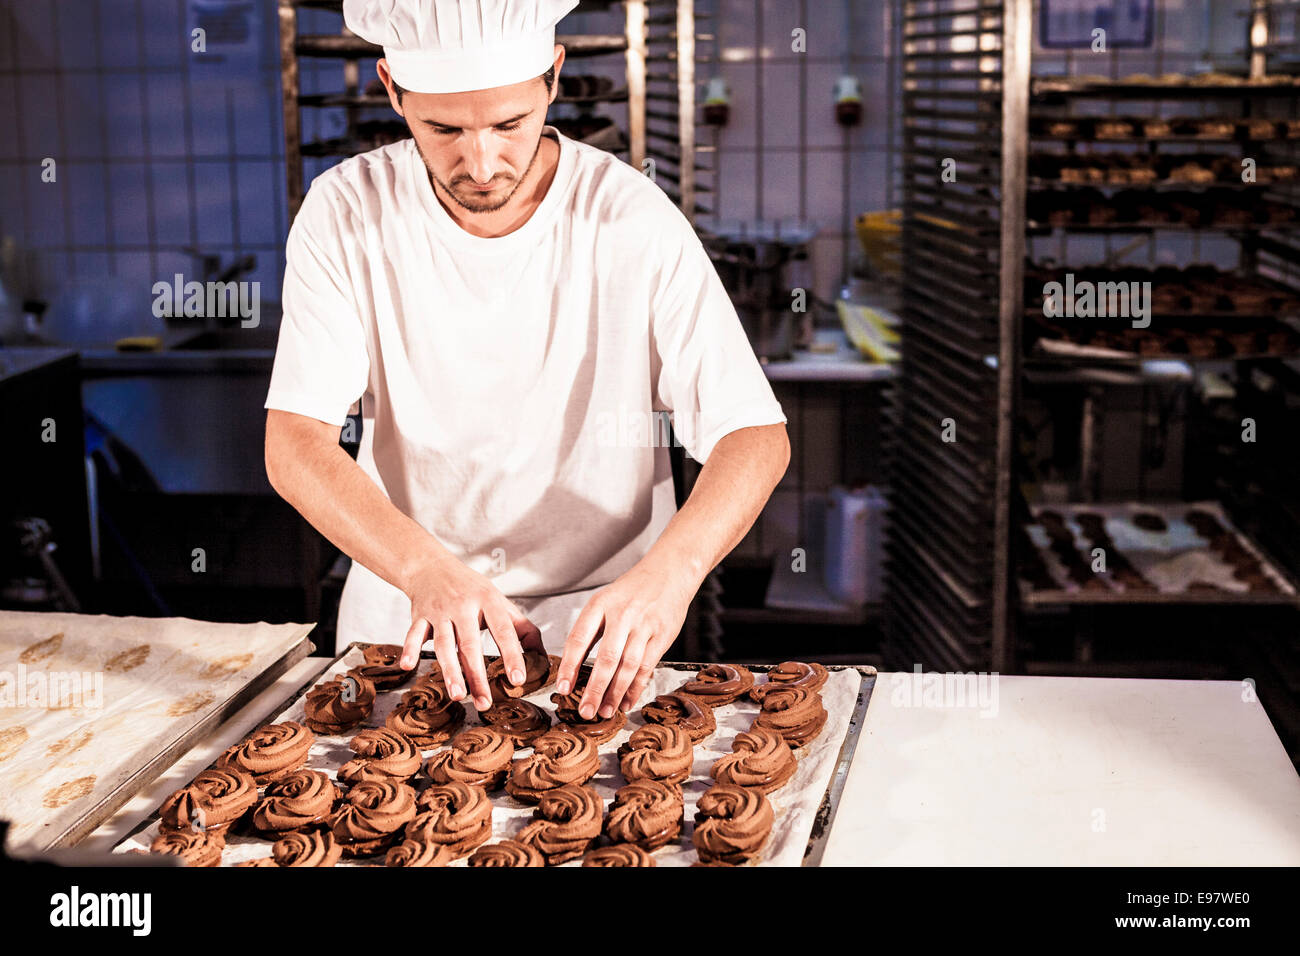 Confectioner positioning chocolate cookies on baking tray - Stock Image